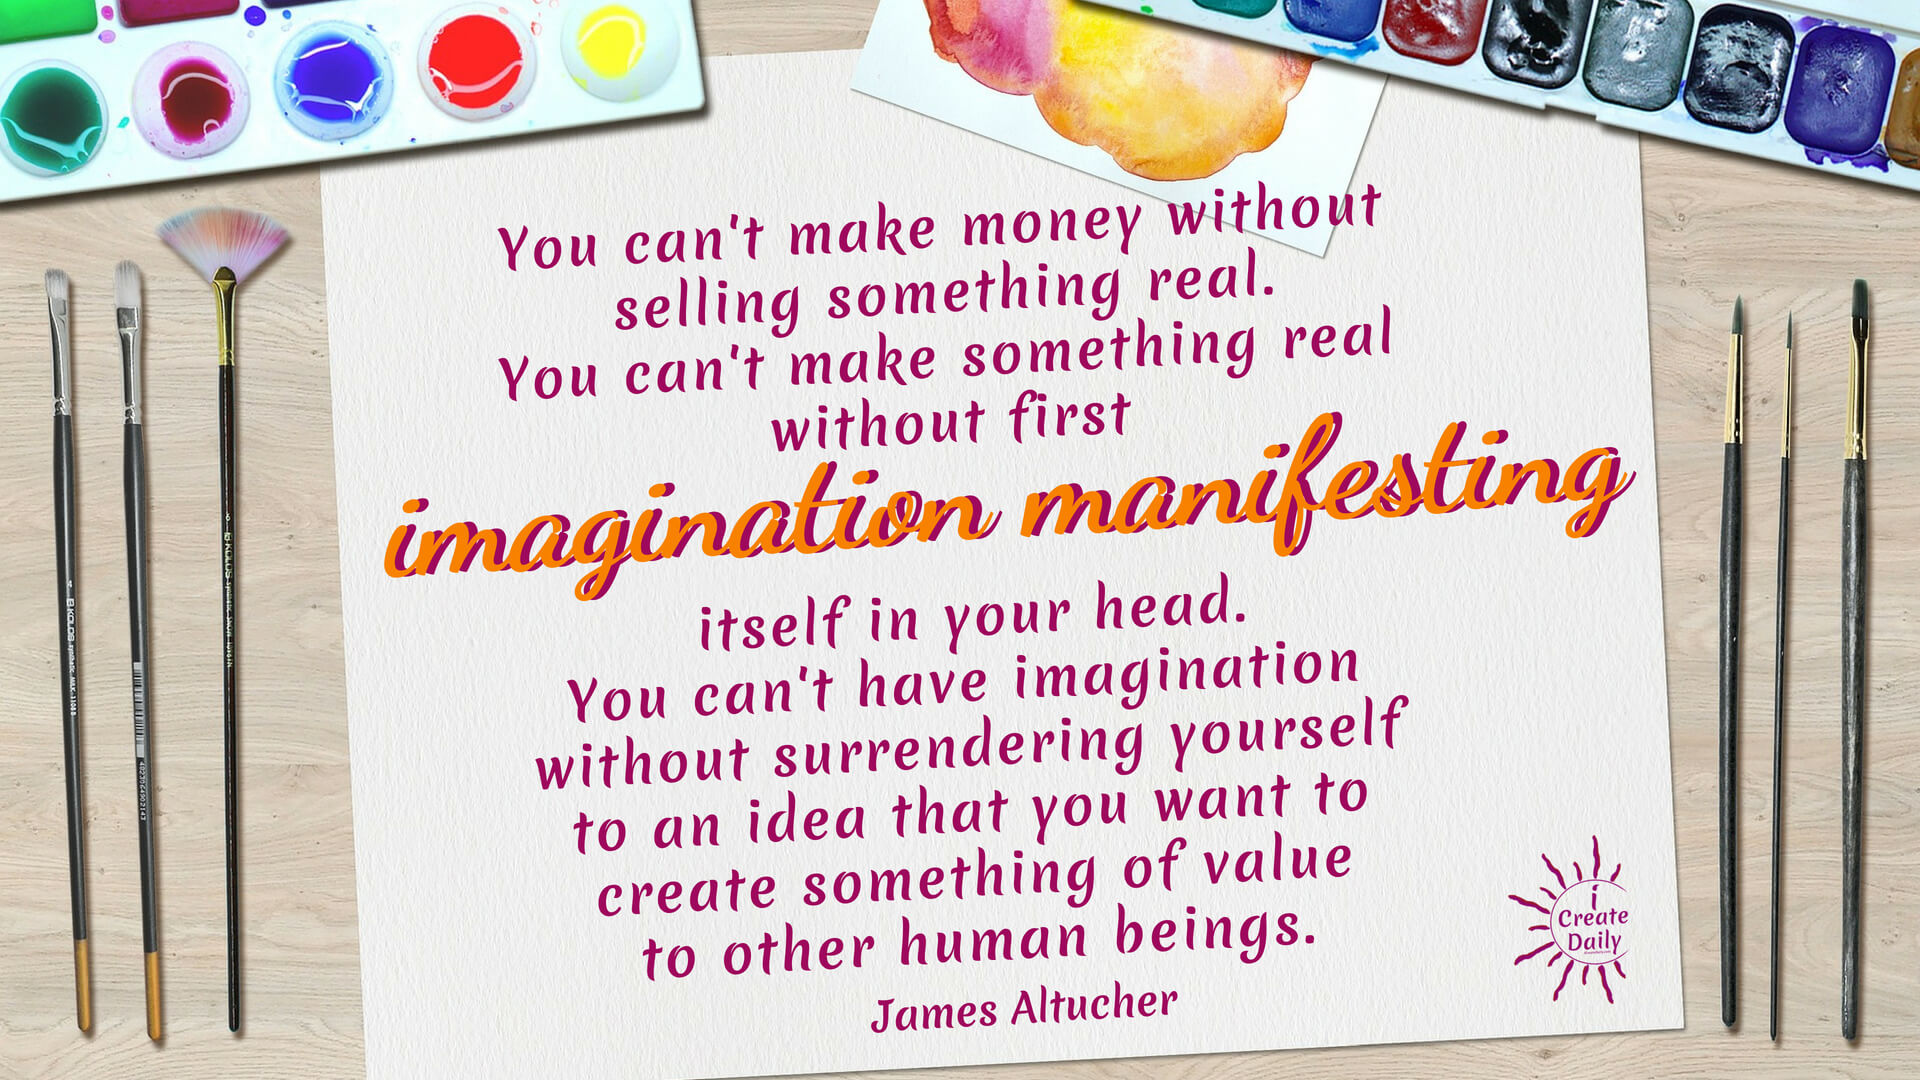 You can't make money without selling something real. You can't make something real without first imagination manifesting itself in your head. You can't have imagination without surrendering yourself to an idea that you want to create something of value to other human beings. ~James Altucher